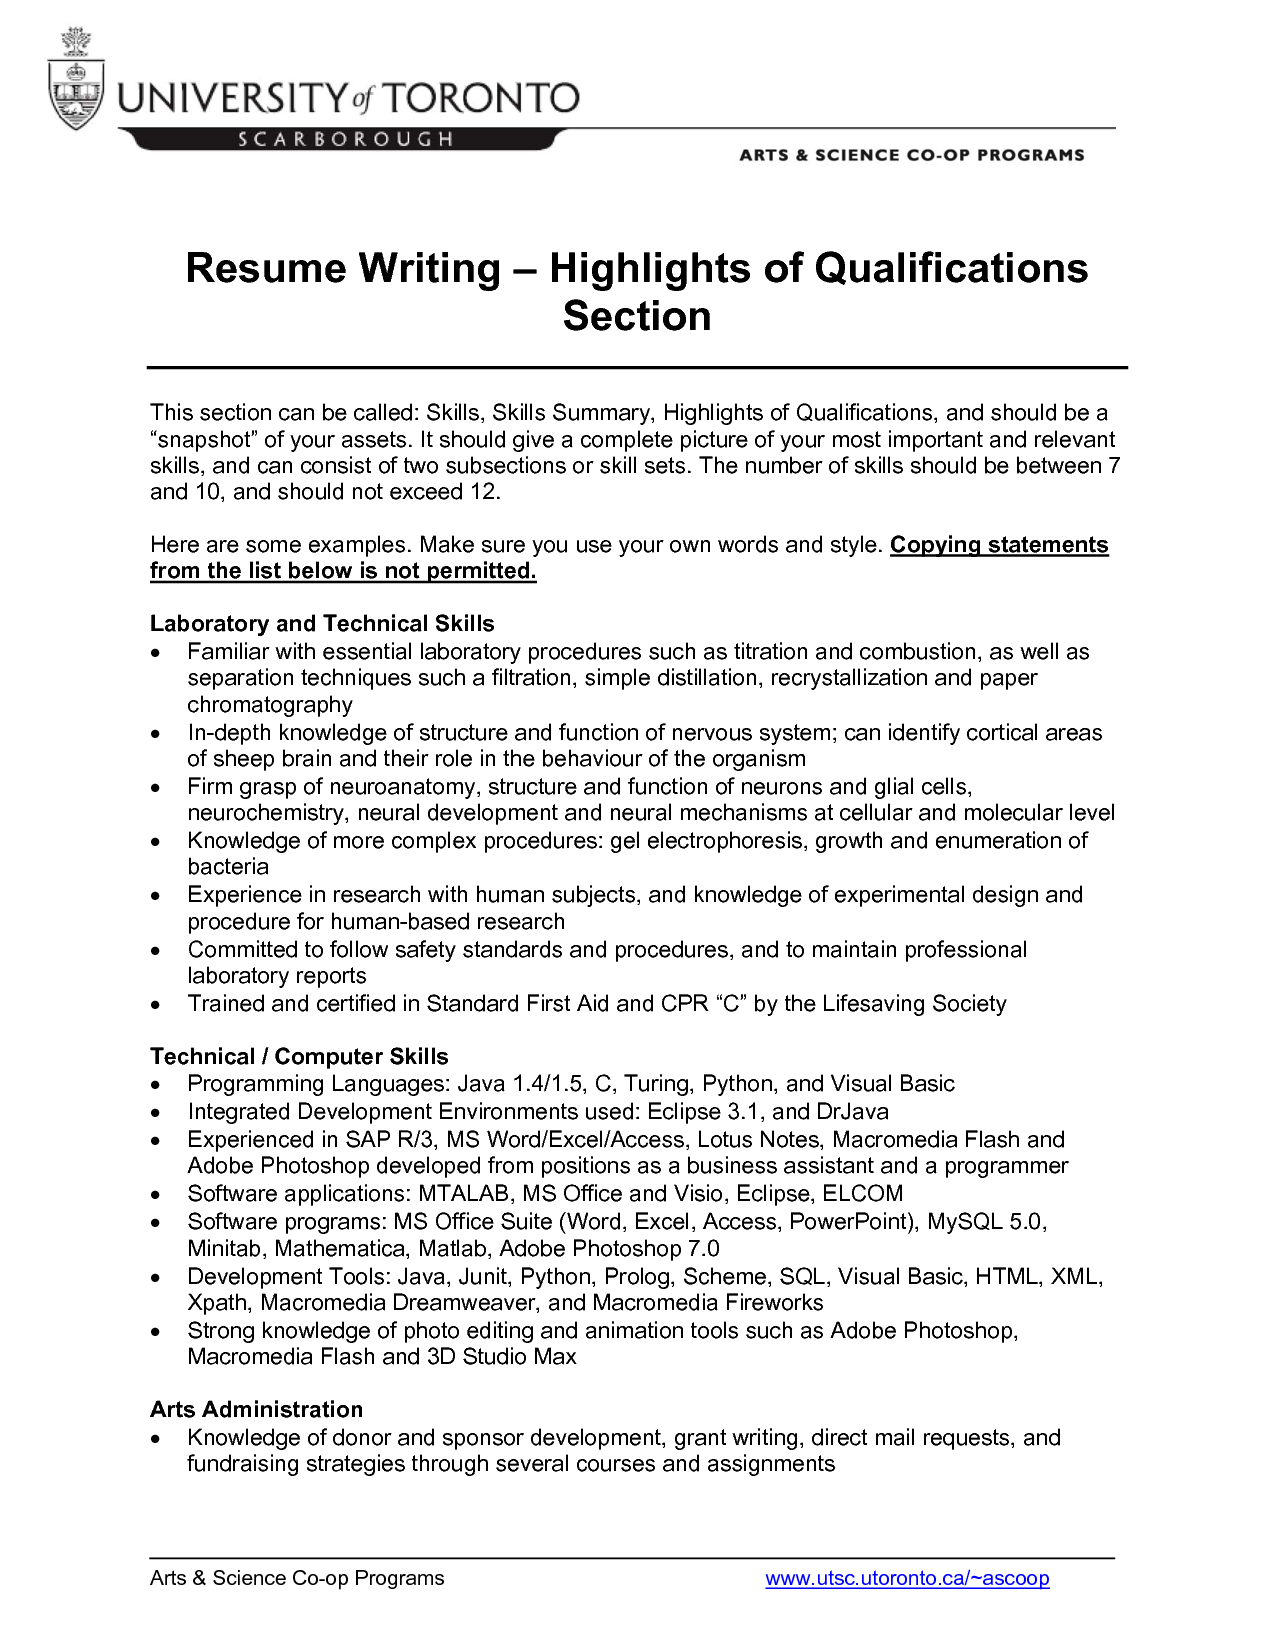 High Quality Computer Skills Qualifications Resume    Http://www.resumecareer.info/computer  Skills Abilities Resume